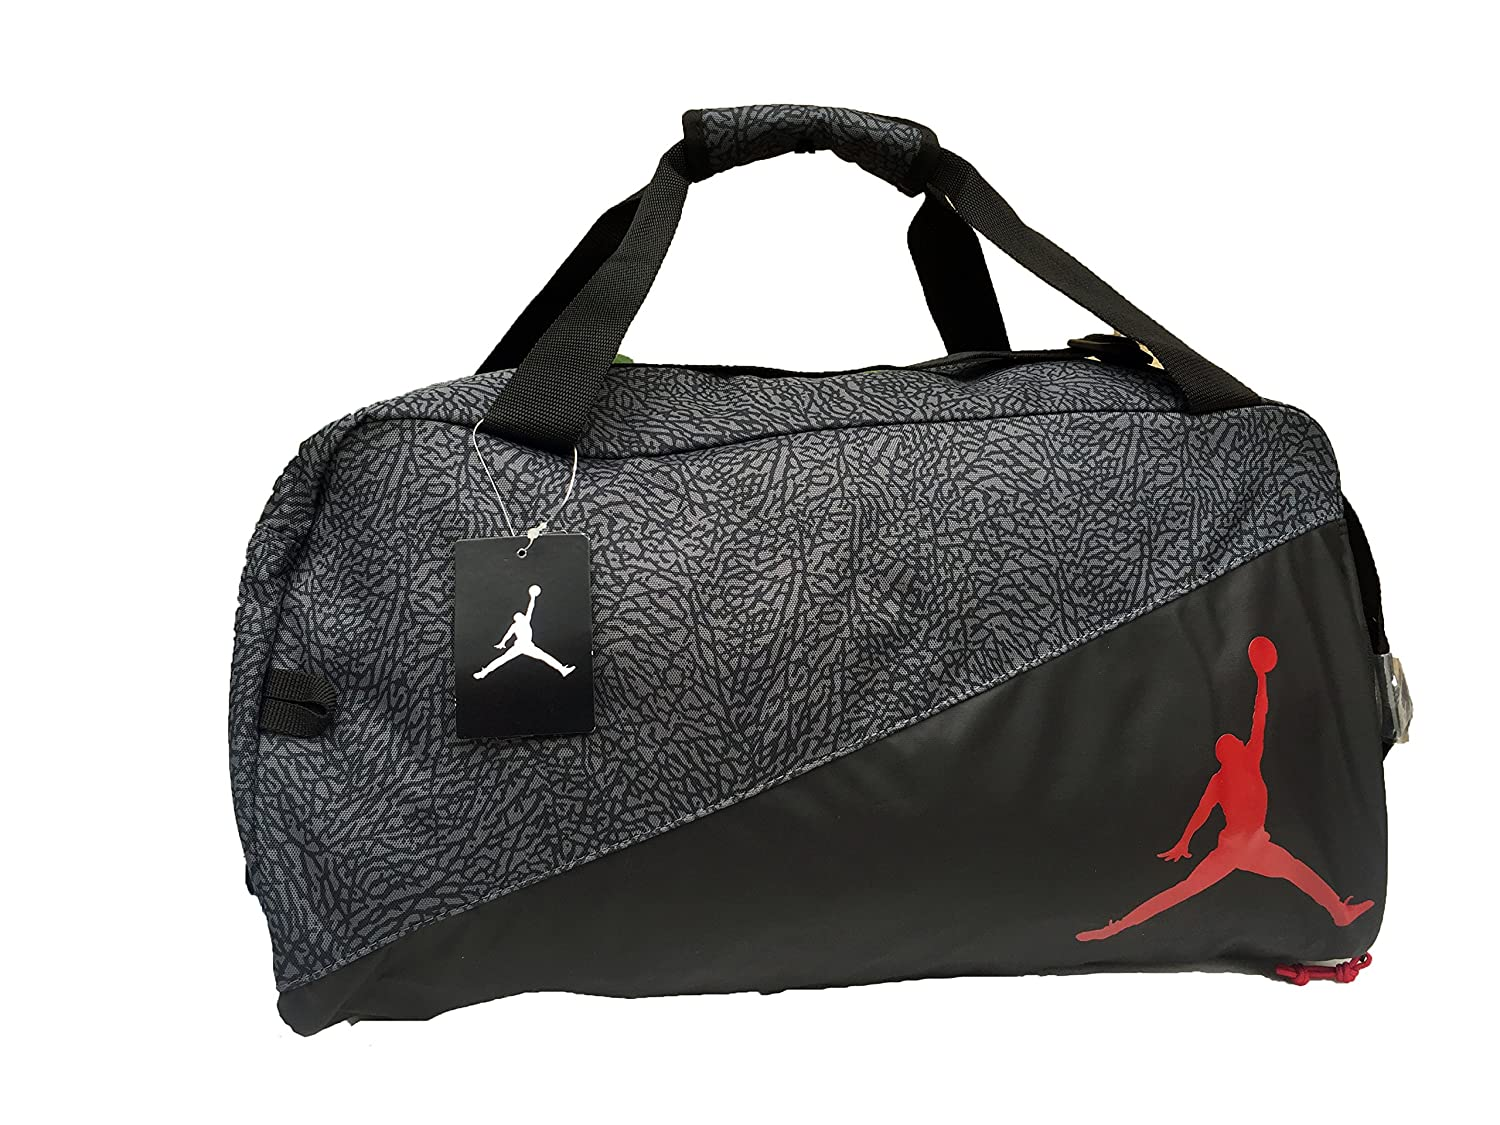 fd206e2dd86529 Amazon.com  Nike Jordan Jumpman Sports Elemental Duffel Bag  Sports    Outdoors